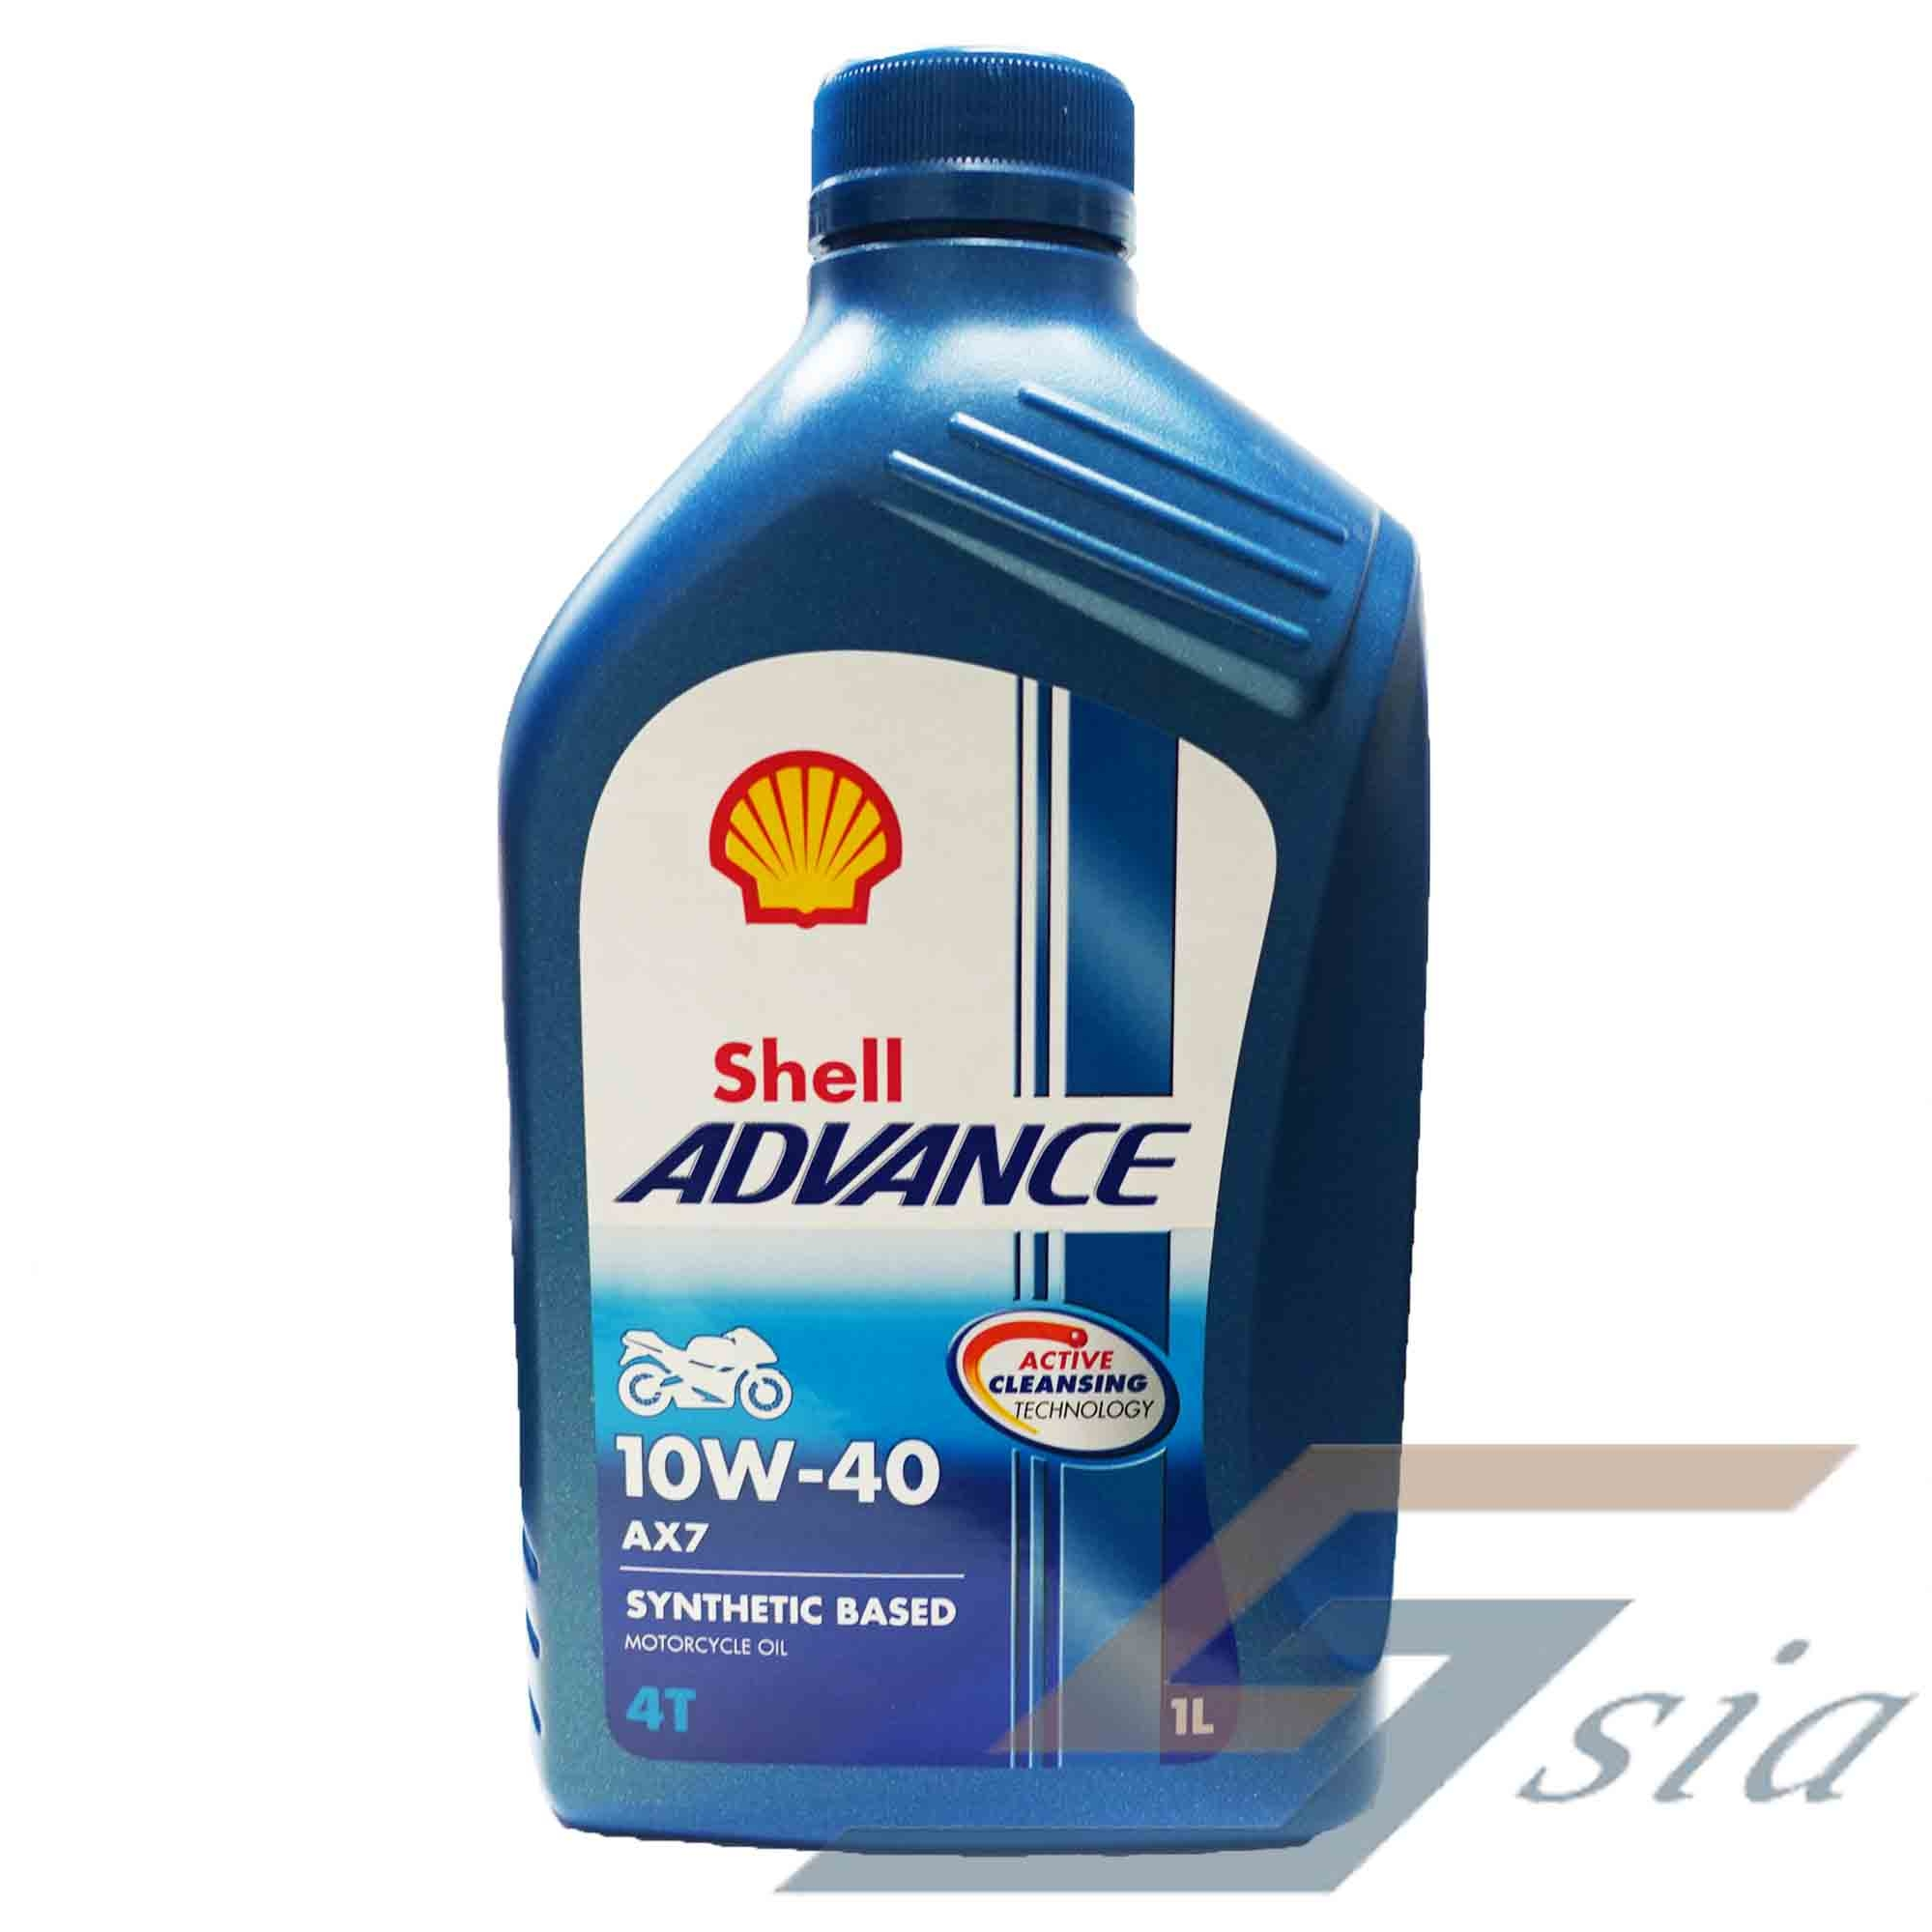 Shell advance ax7 10w 40 engine oil end 3 23 2020 7 35 pm for Advance auto motor oil